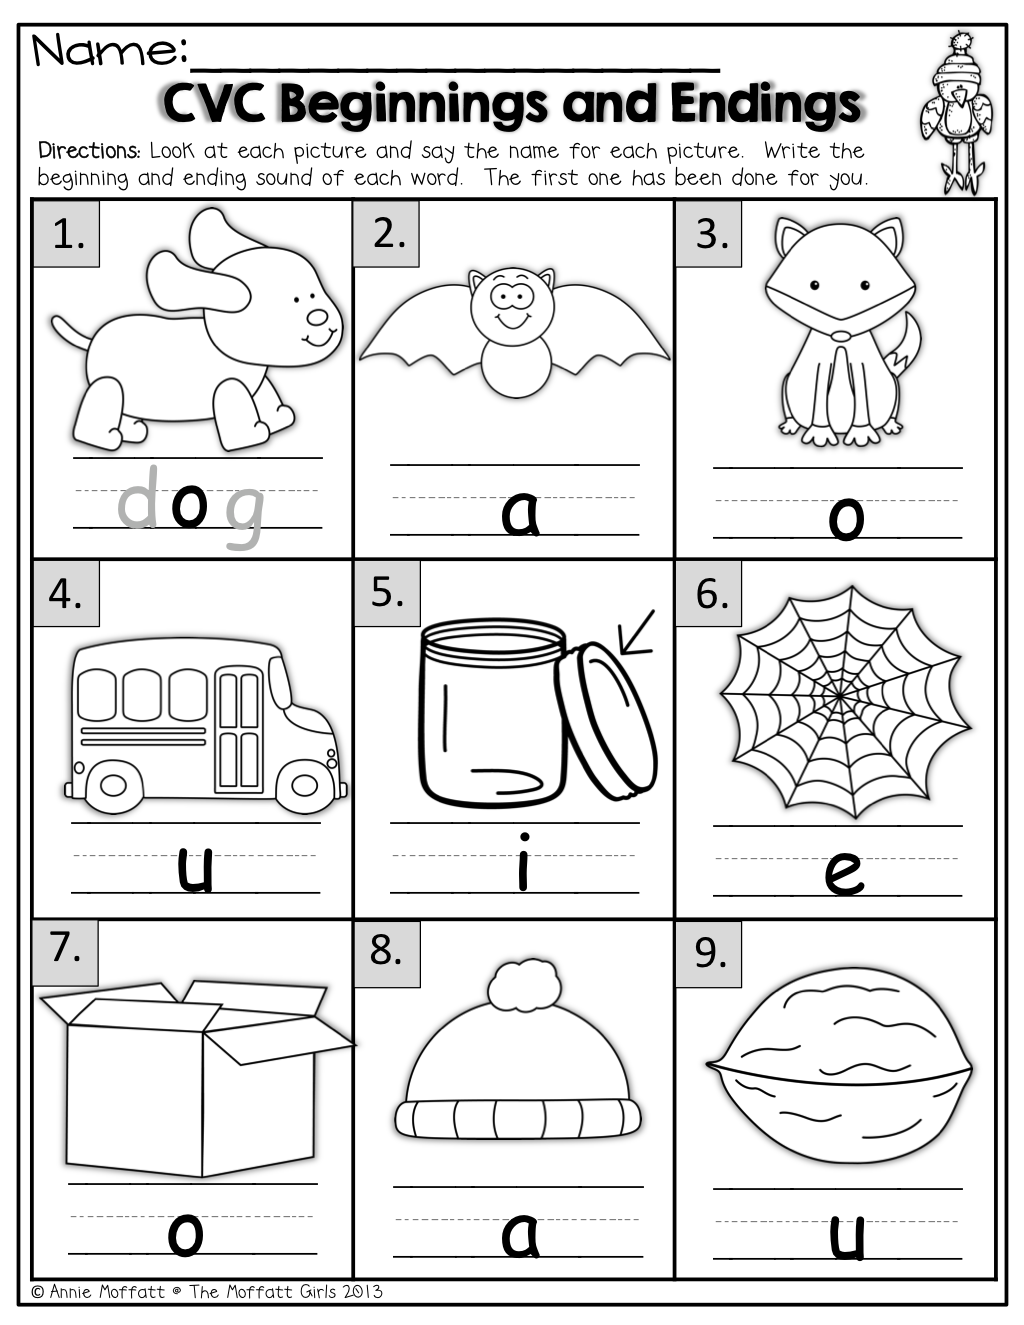 Beginning and Ending Sounds – Initial Sound Worksheets for Kindergarten